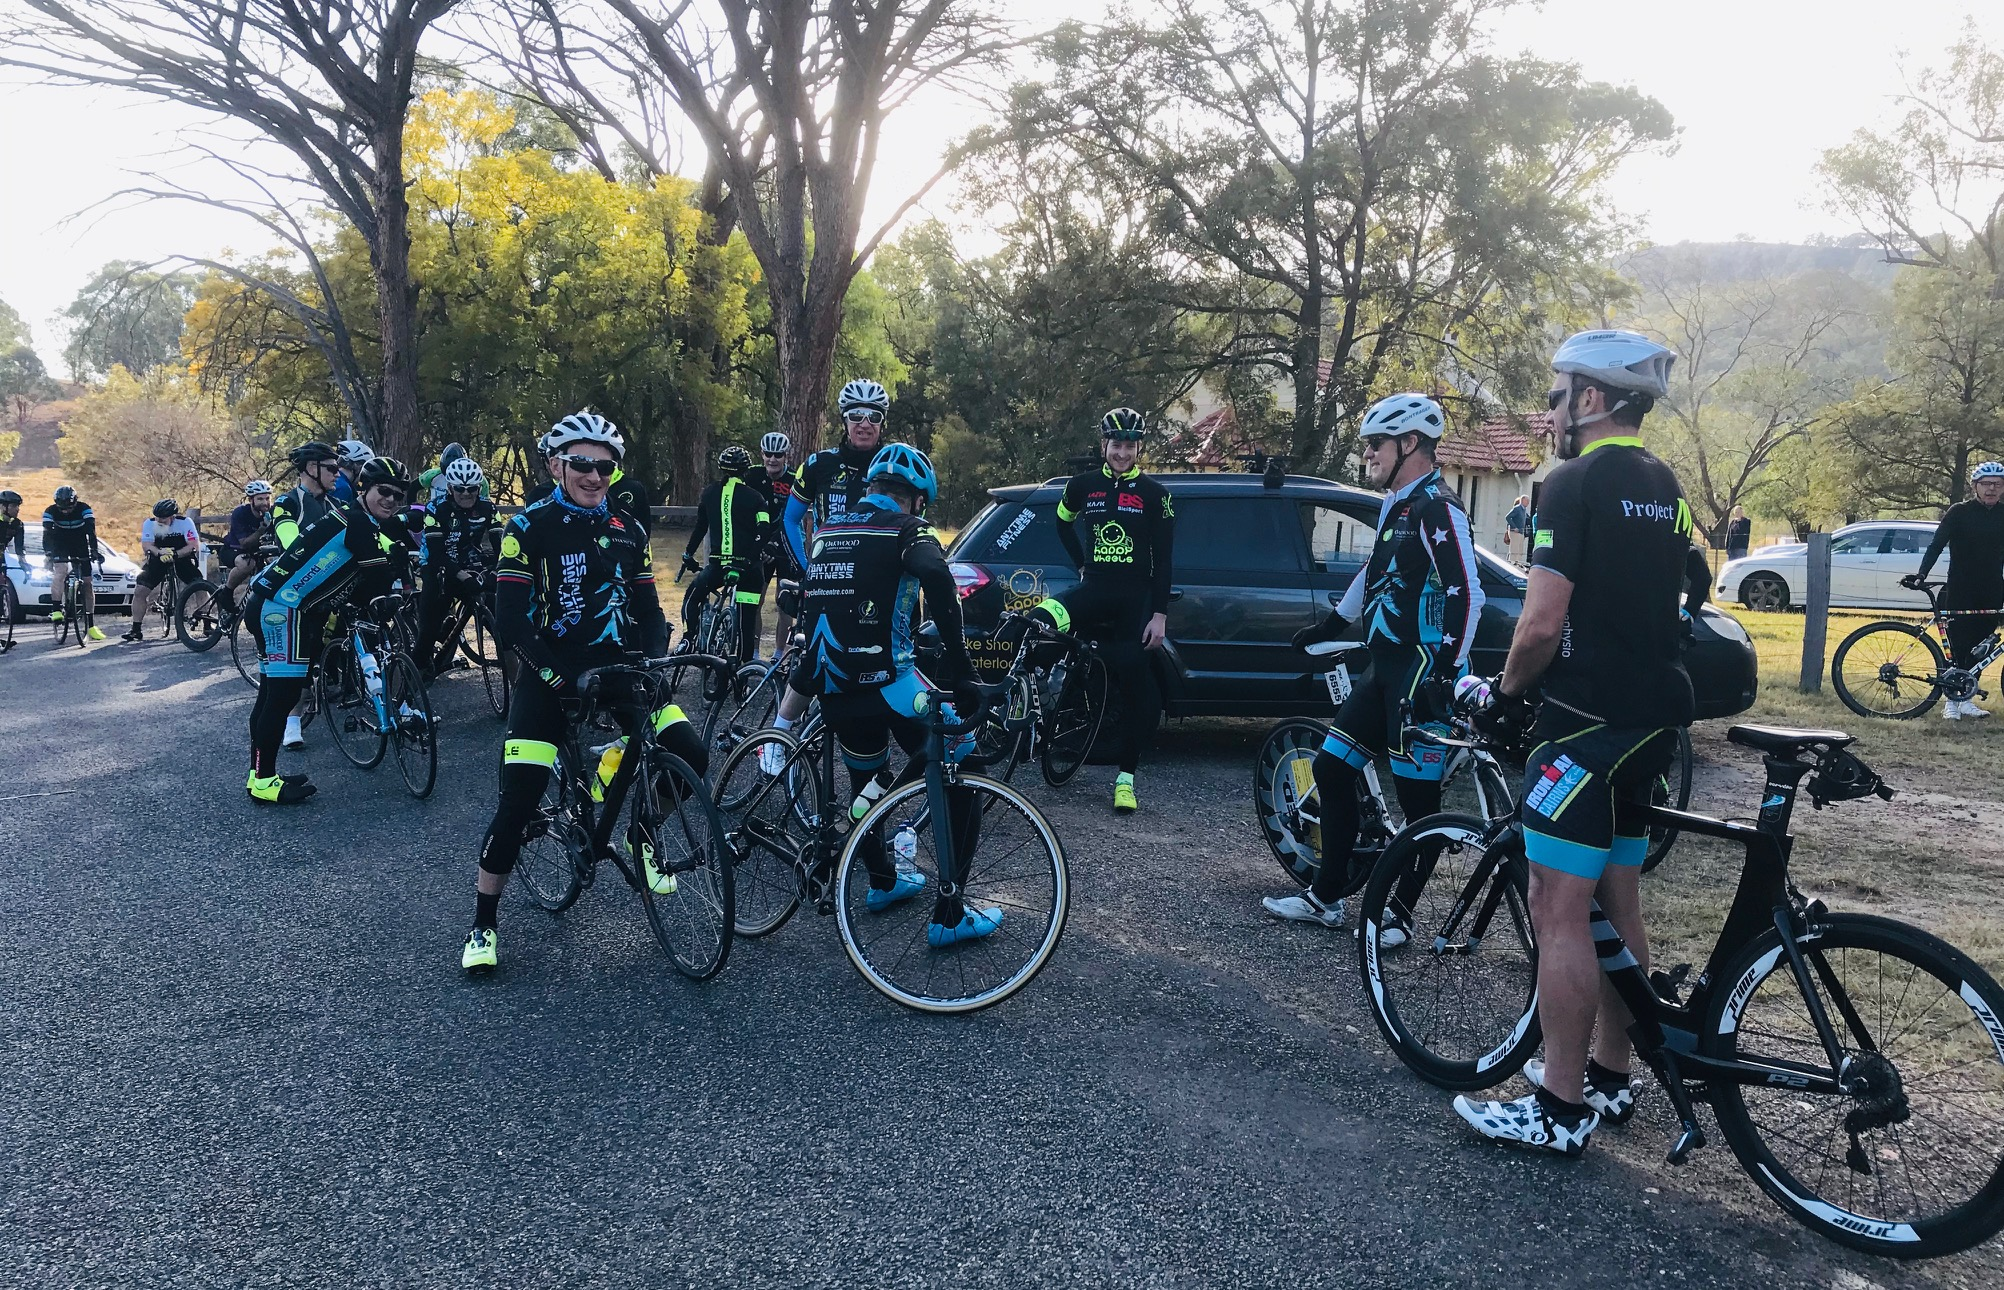 NSW Team Time Trial @ 3 August - BiciSport Sunday club ride up the Mirannie Valley to the St Johns Baptist Church. Marty Wright in middle picture (facing the other way) was somewhat in the hurt box after a big day on team management duties.